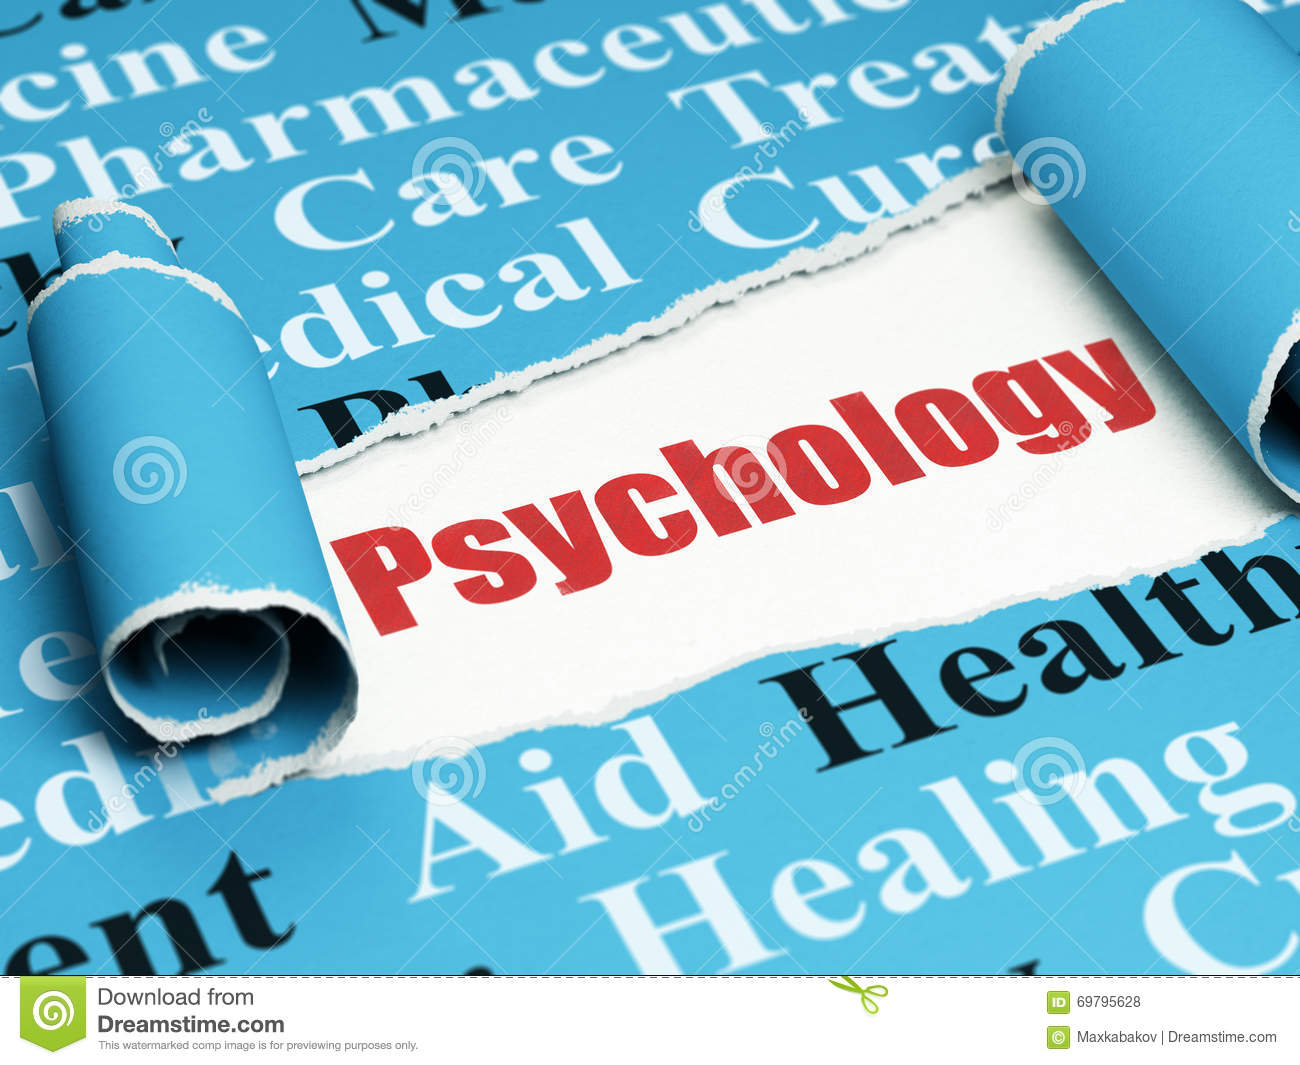 010 Research Paper Psychology On Dreams Health Concept Red Text Under Piece Torn Curled Blue Tag Cloud Rendering Singular Full